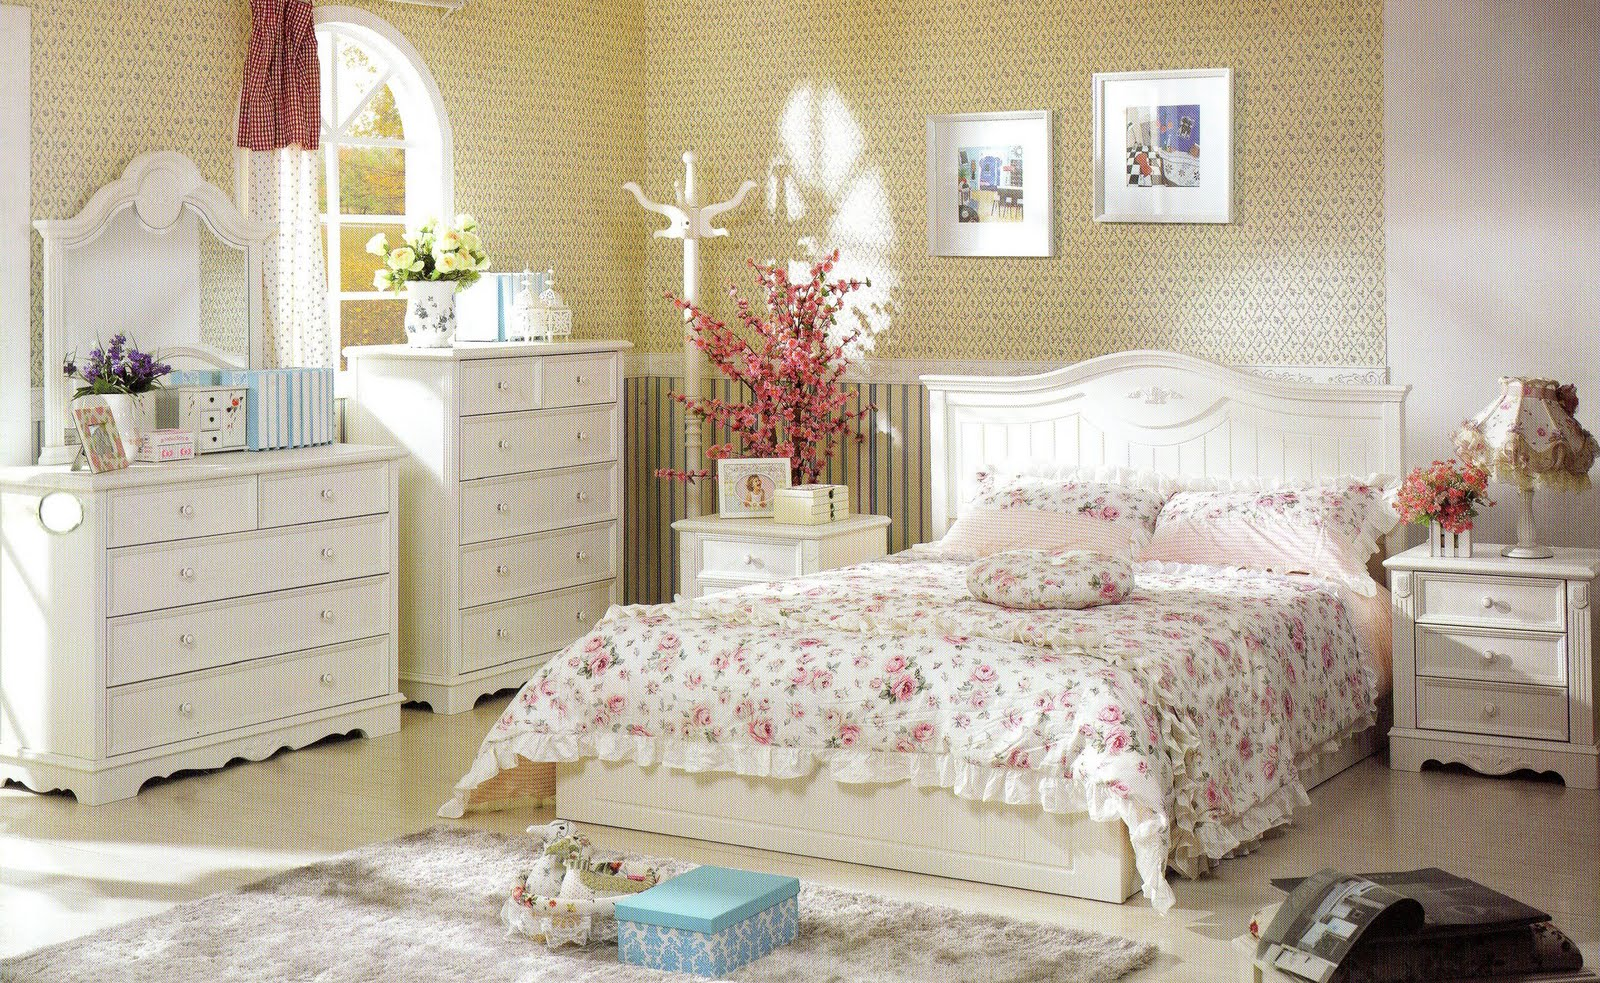 country style bedrooms sweet doll house. Black Bedroom Furniture Sets. Home Design Ideas